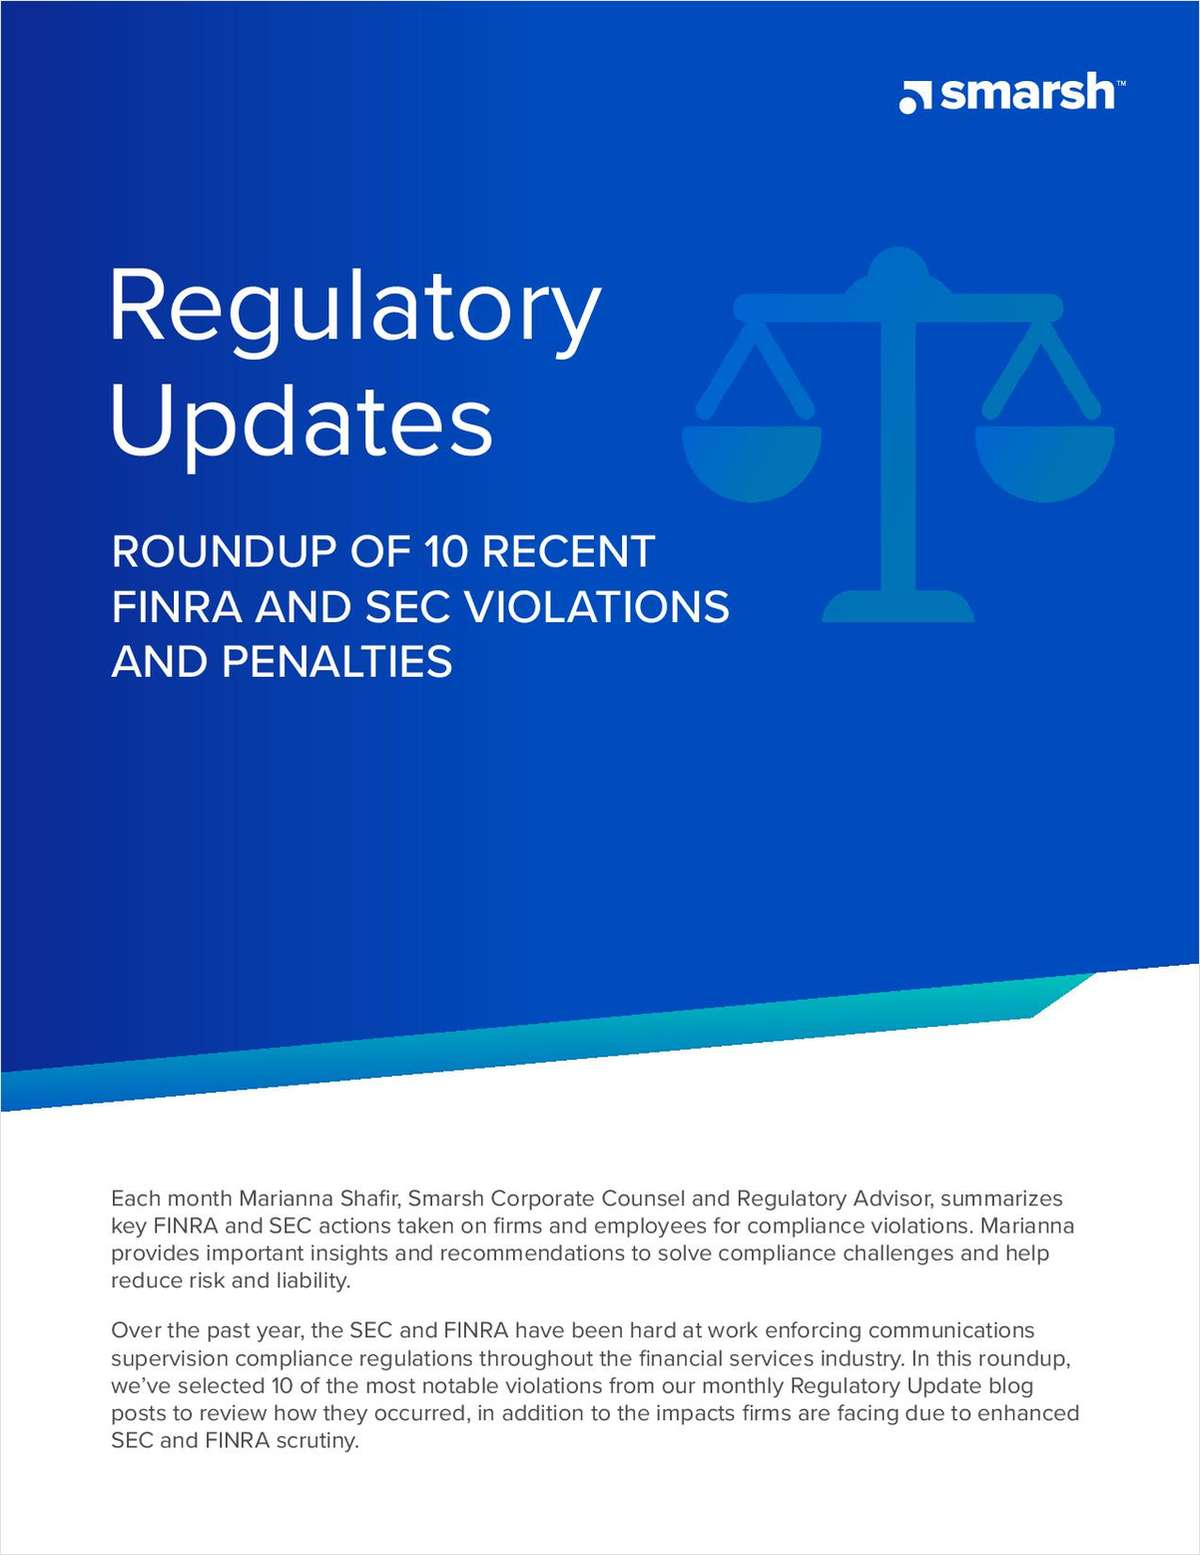 Regulatory Update: Roundup of 10 Recent FINRA and SEC Violations and Penalties